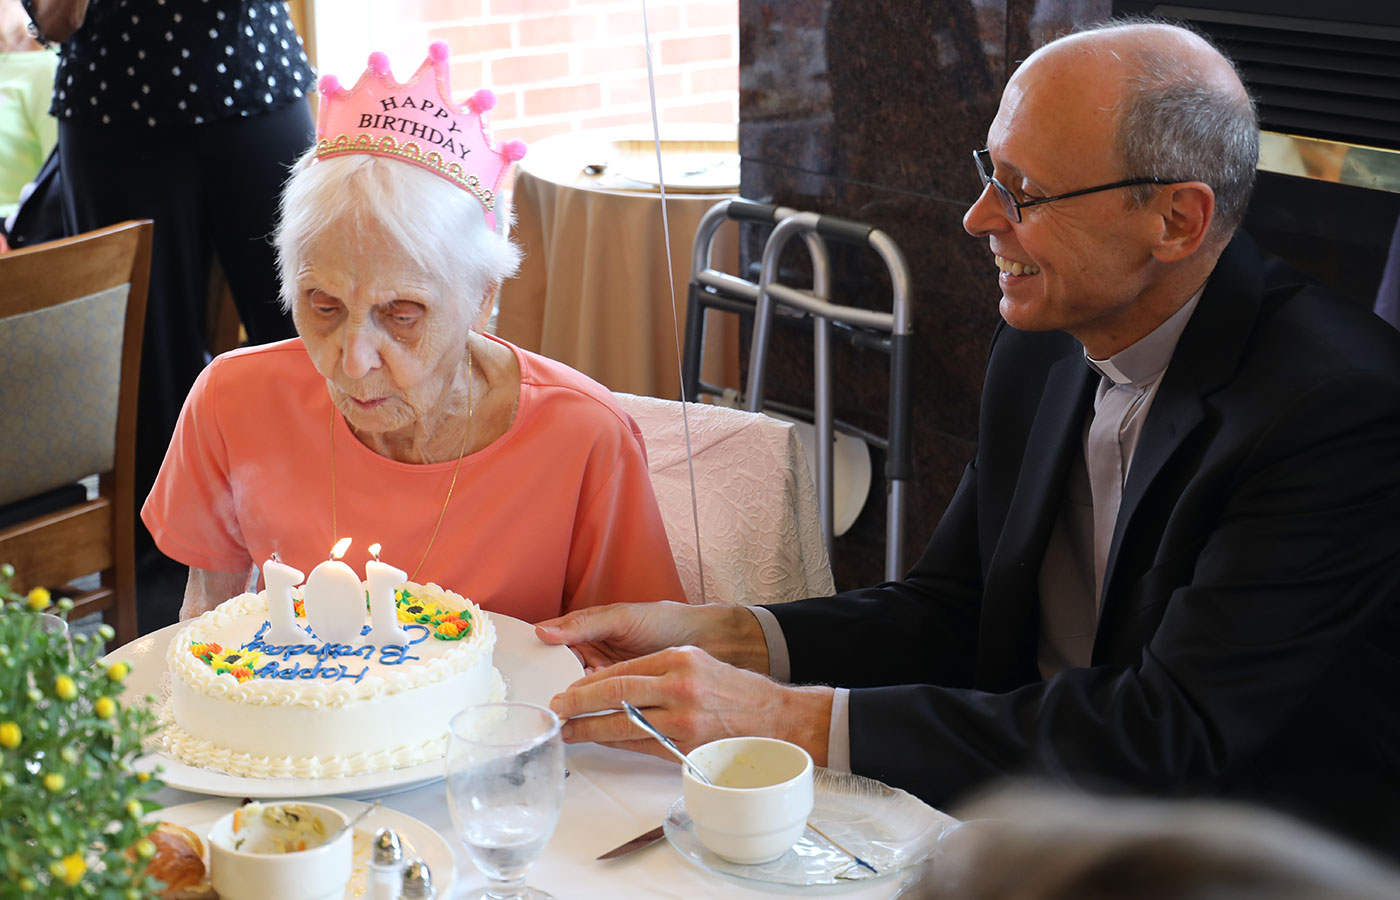 Dr Caroline Hallshwandner and Father Jim celebrating Carolines 101st birthday